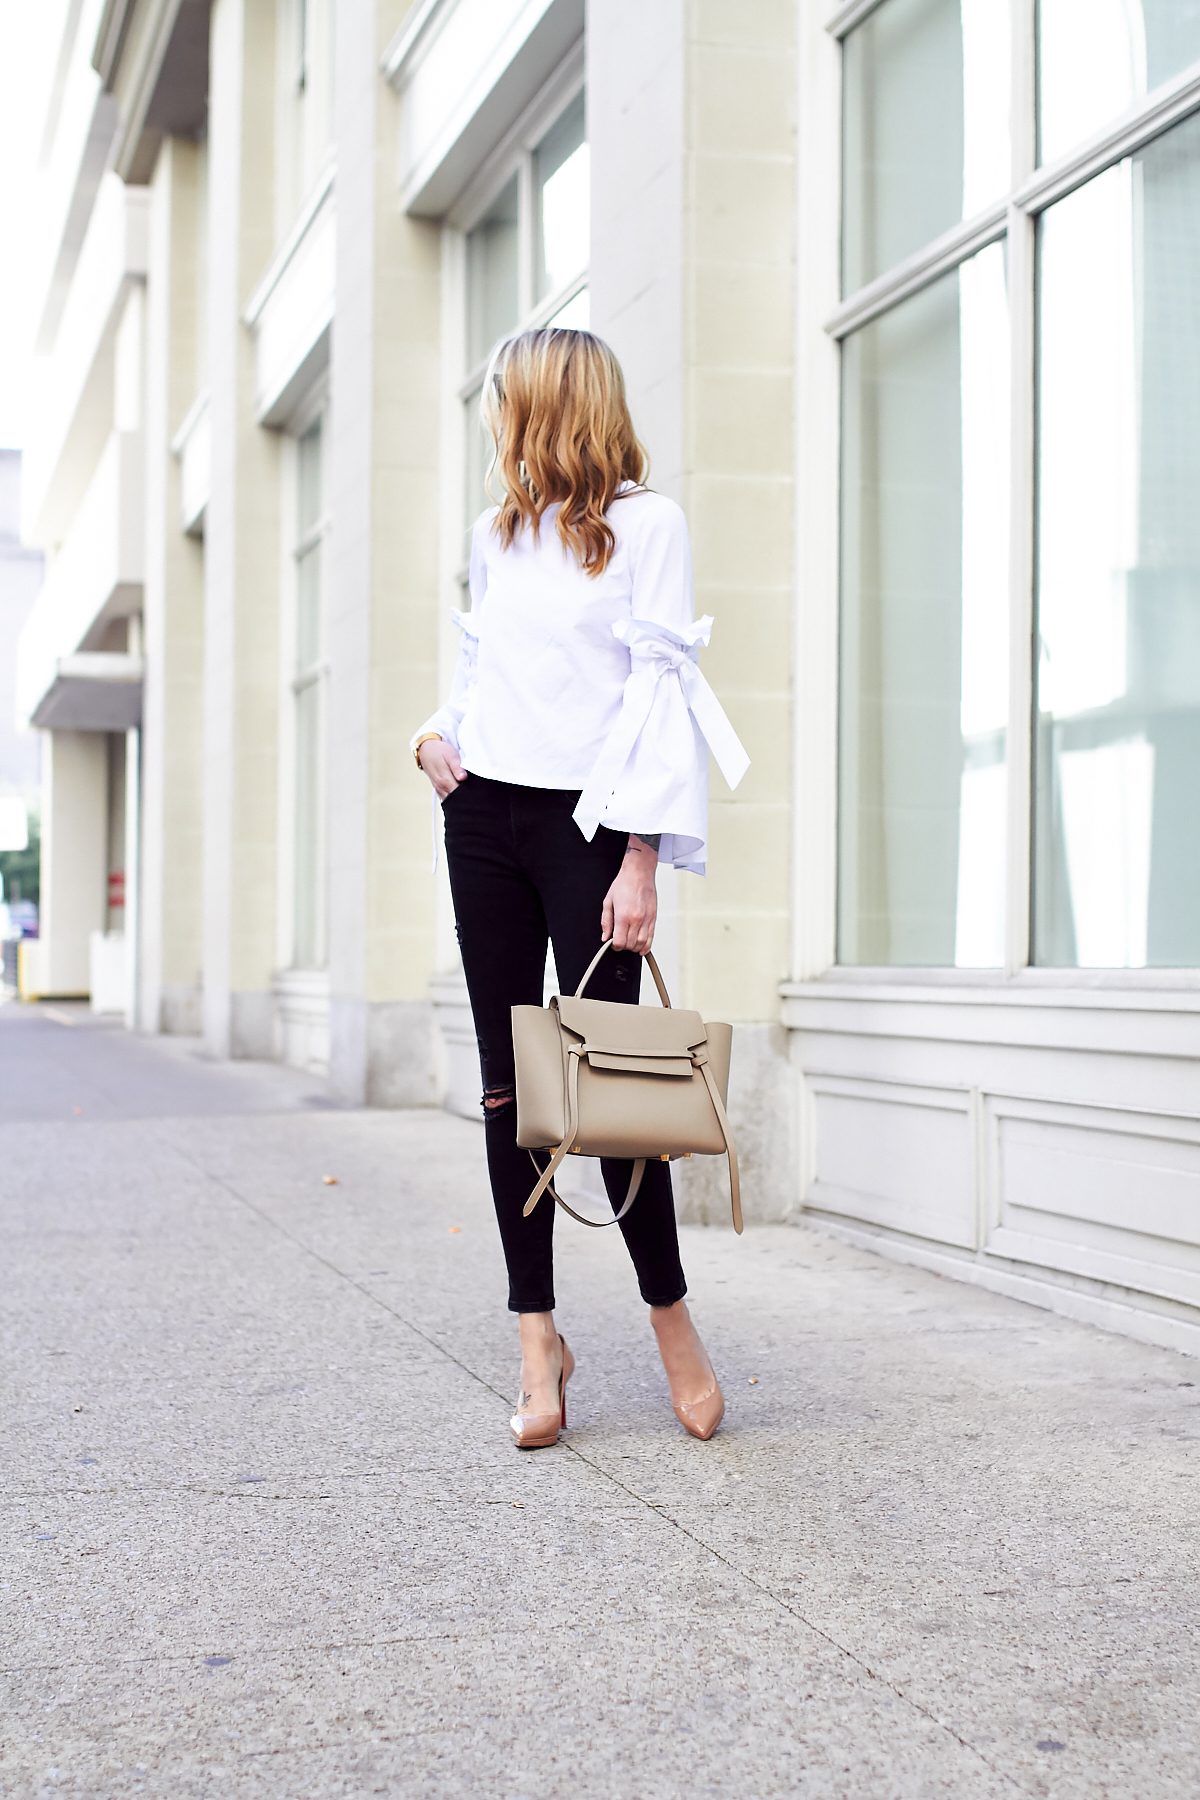 Fall Outfit, White Ruffle Sleeve Top, Black Ripped Skinny Jeans, Celine Tie Belt Bag, Christian Louboutin Nude Pumps